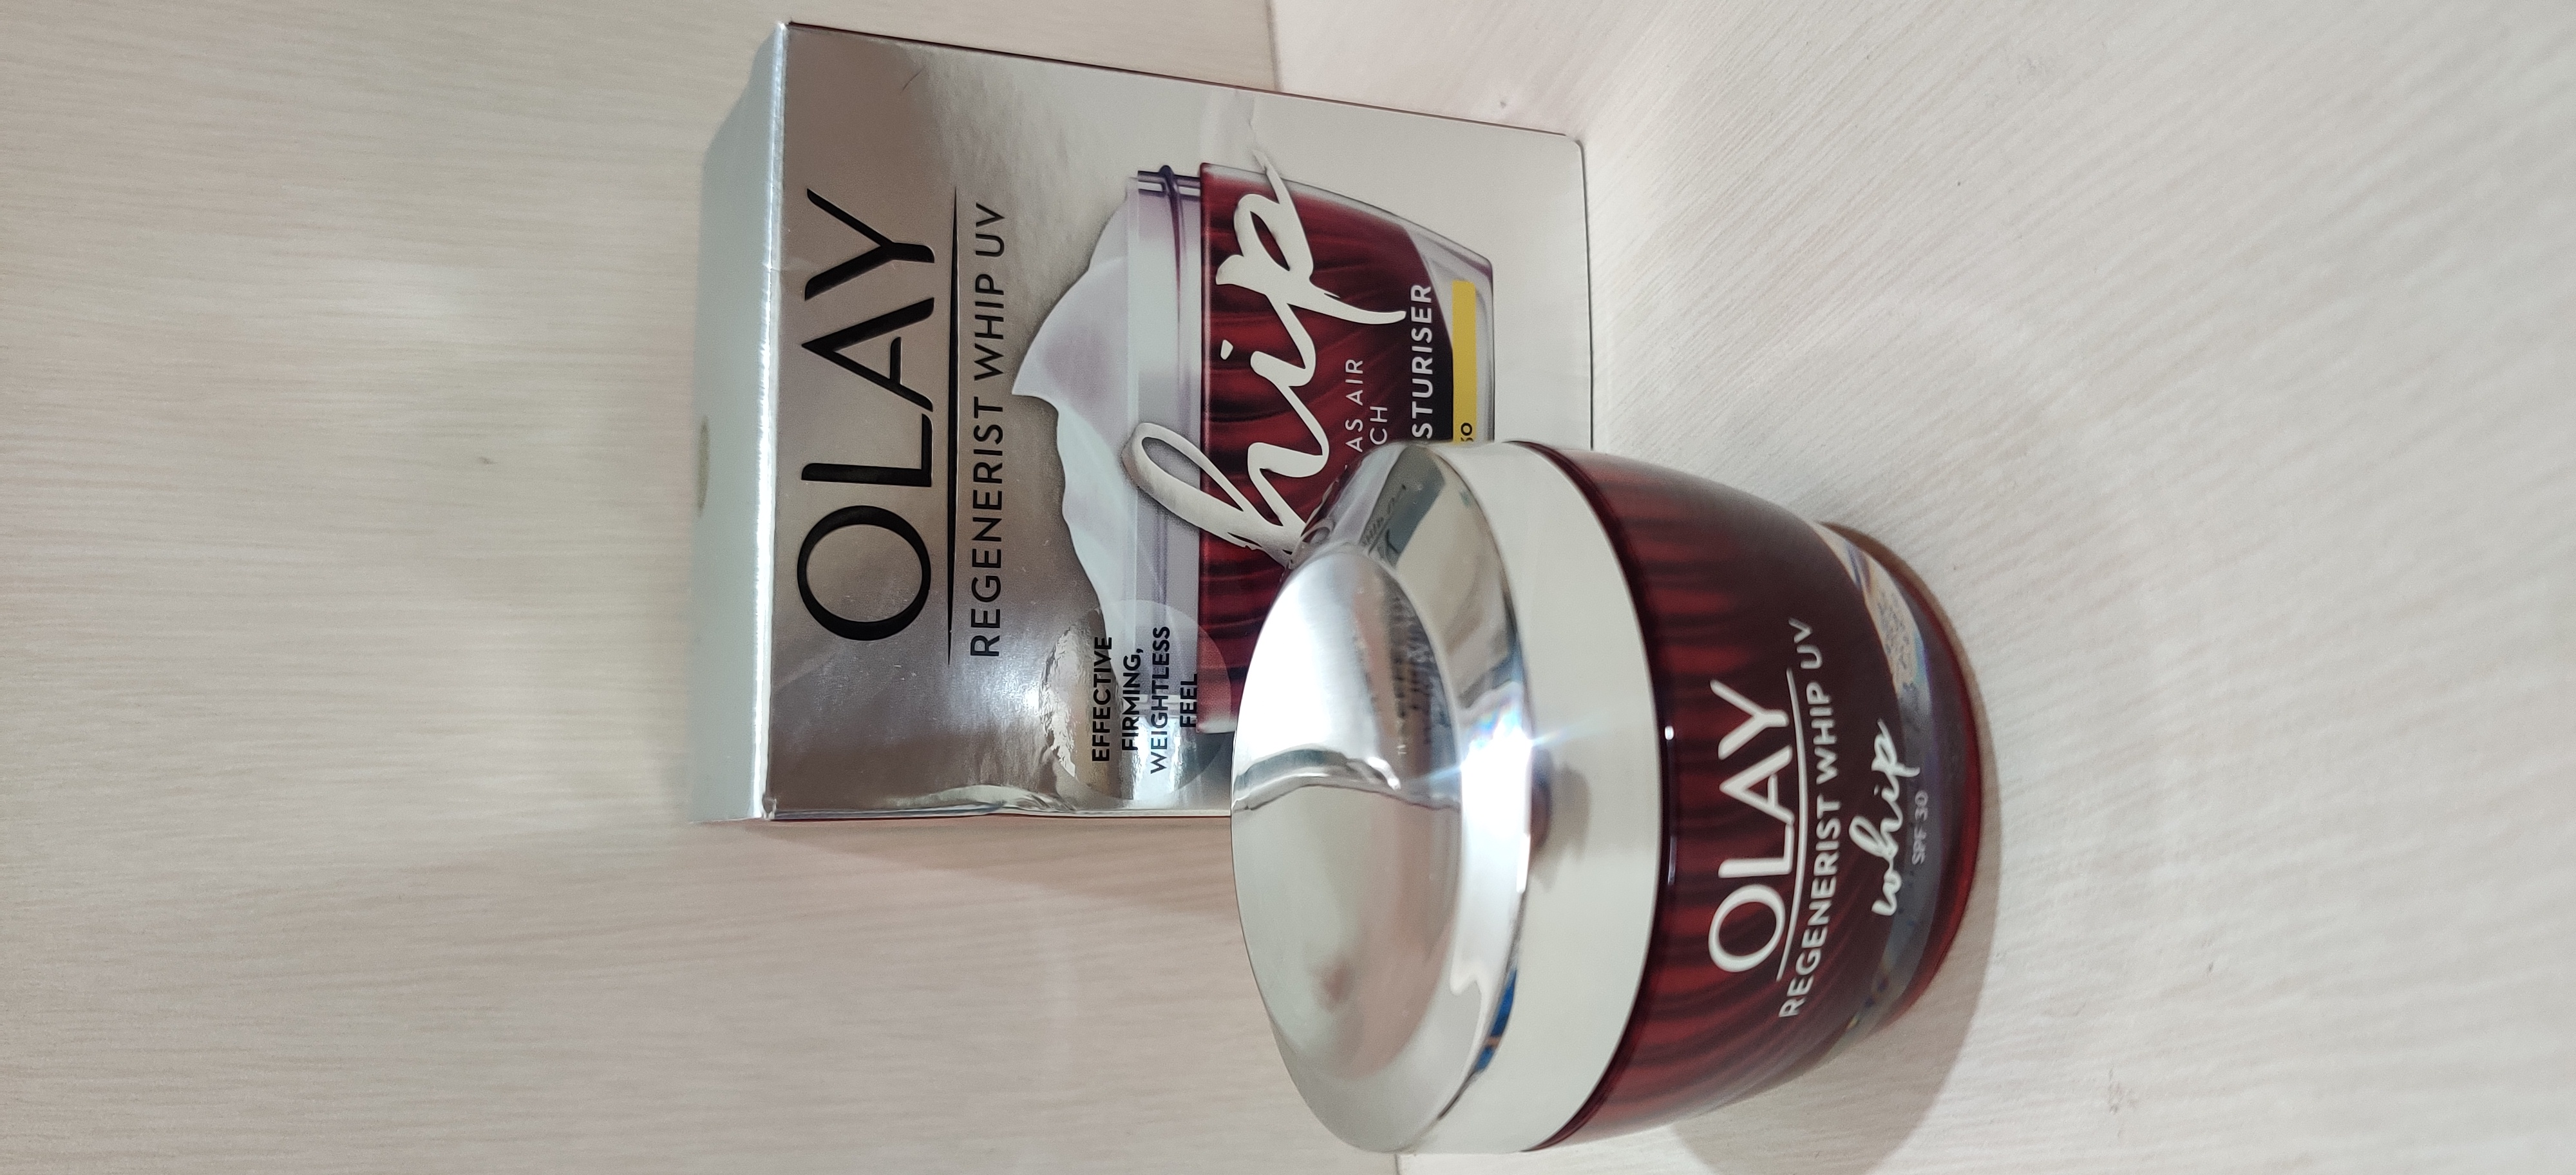 Olay Regenerist Micro-Sculpting Cream-Food to my skin!-By glitterlife_diksha-1